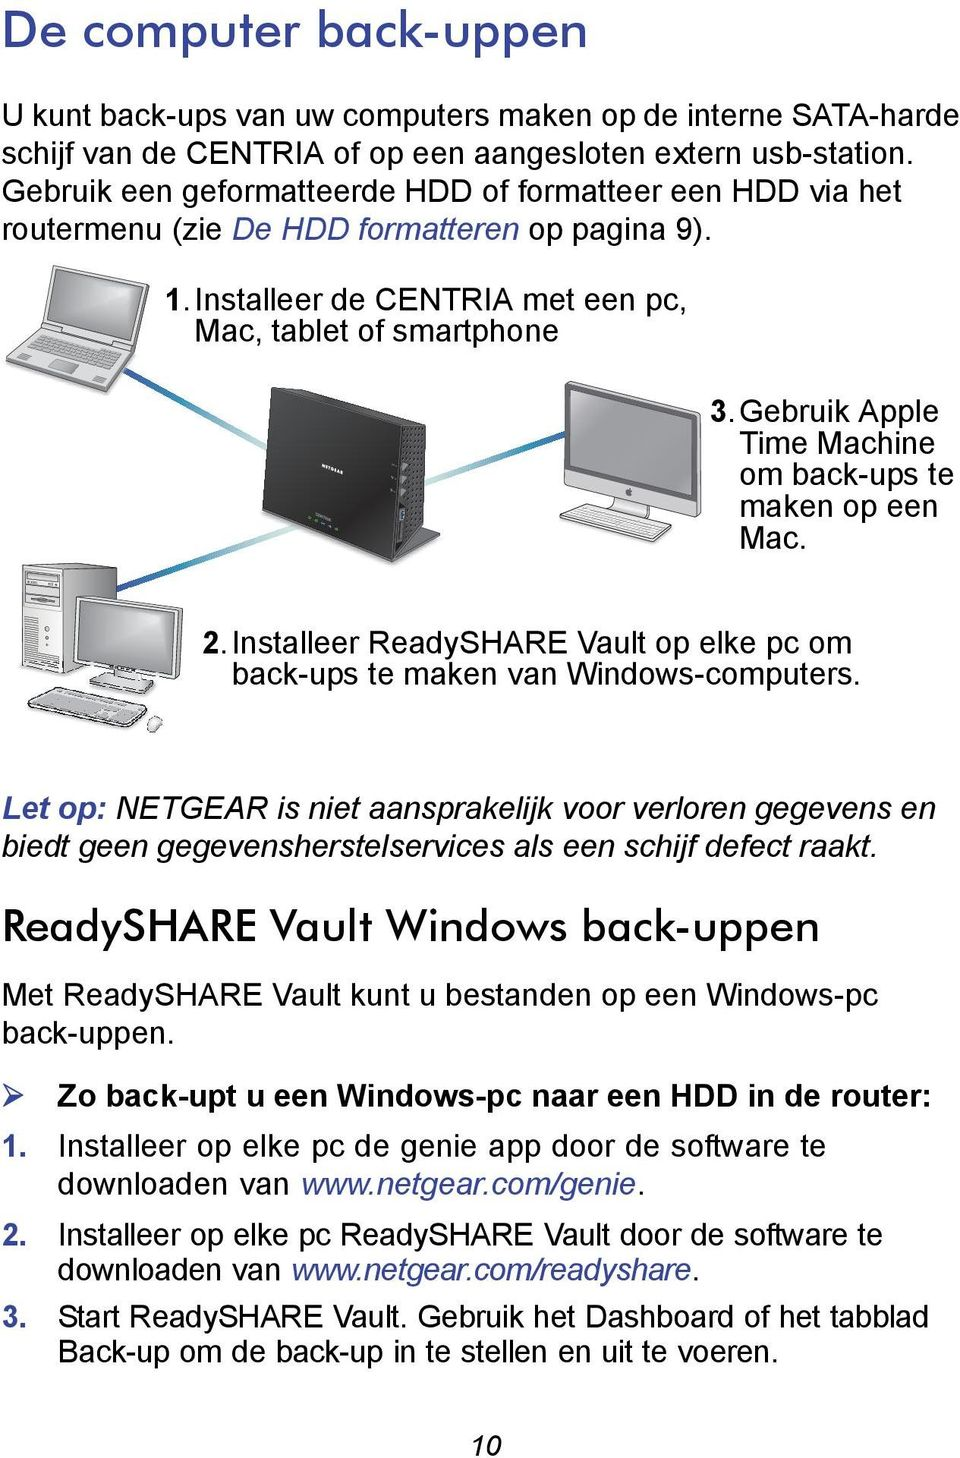 Gebruik Apple Time Machine om back-ups te maken op een Mac. 2.Installeer ReadySHARE Vault op elke pc om back-ups te maken van Windows-computers.